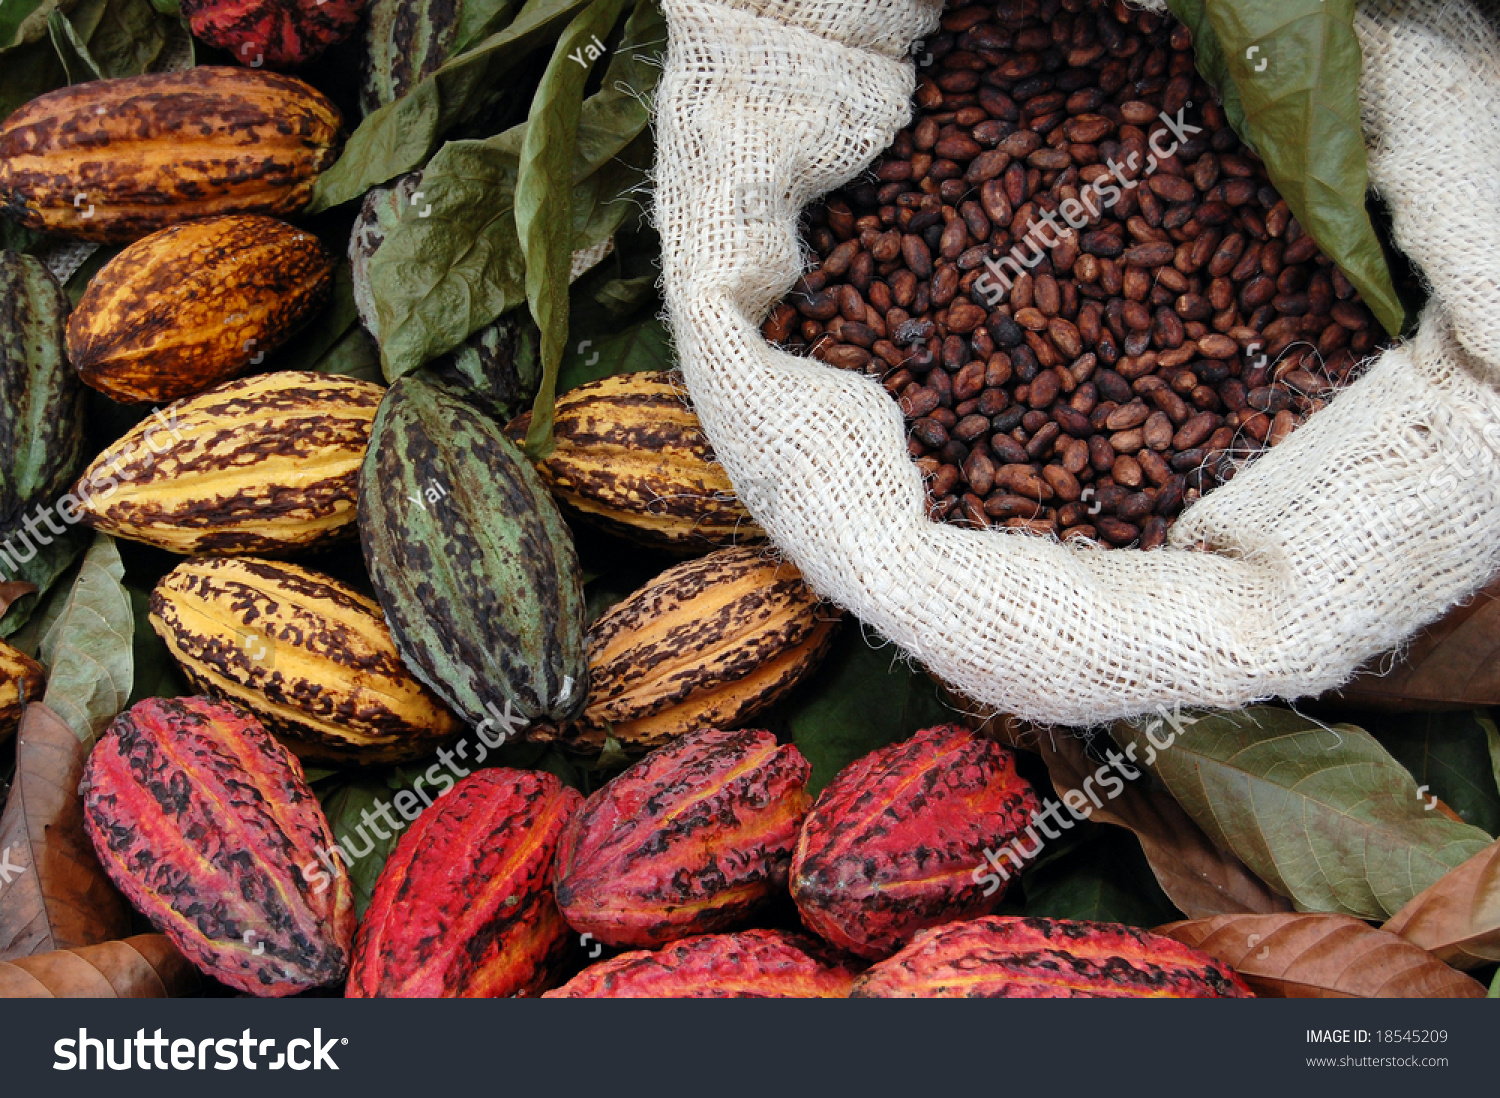 There Are Three Main Cultivar Groups Of Cacao Beans Used To Make Cocoa And Chocolate. Criollo, The Cocoa Bean Used By The Maya. The Forastero And ...1500 x 1098 jpeg 960kB